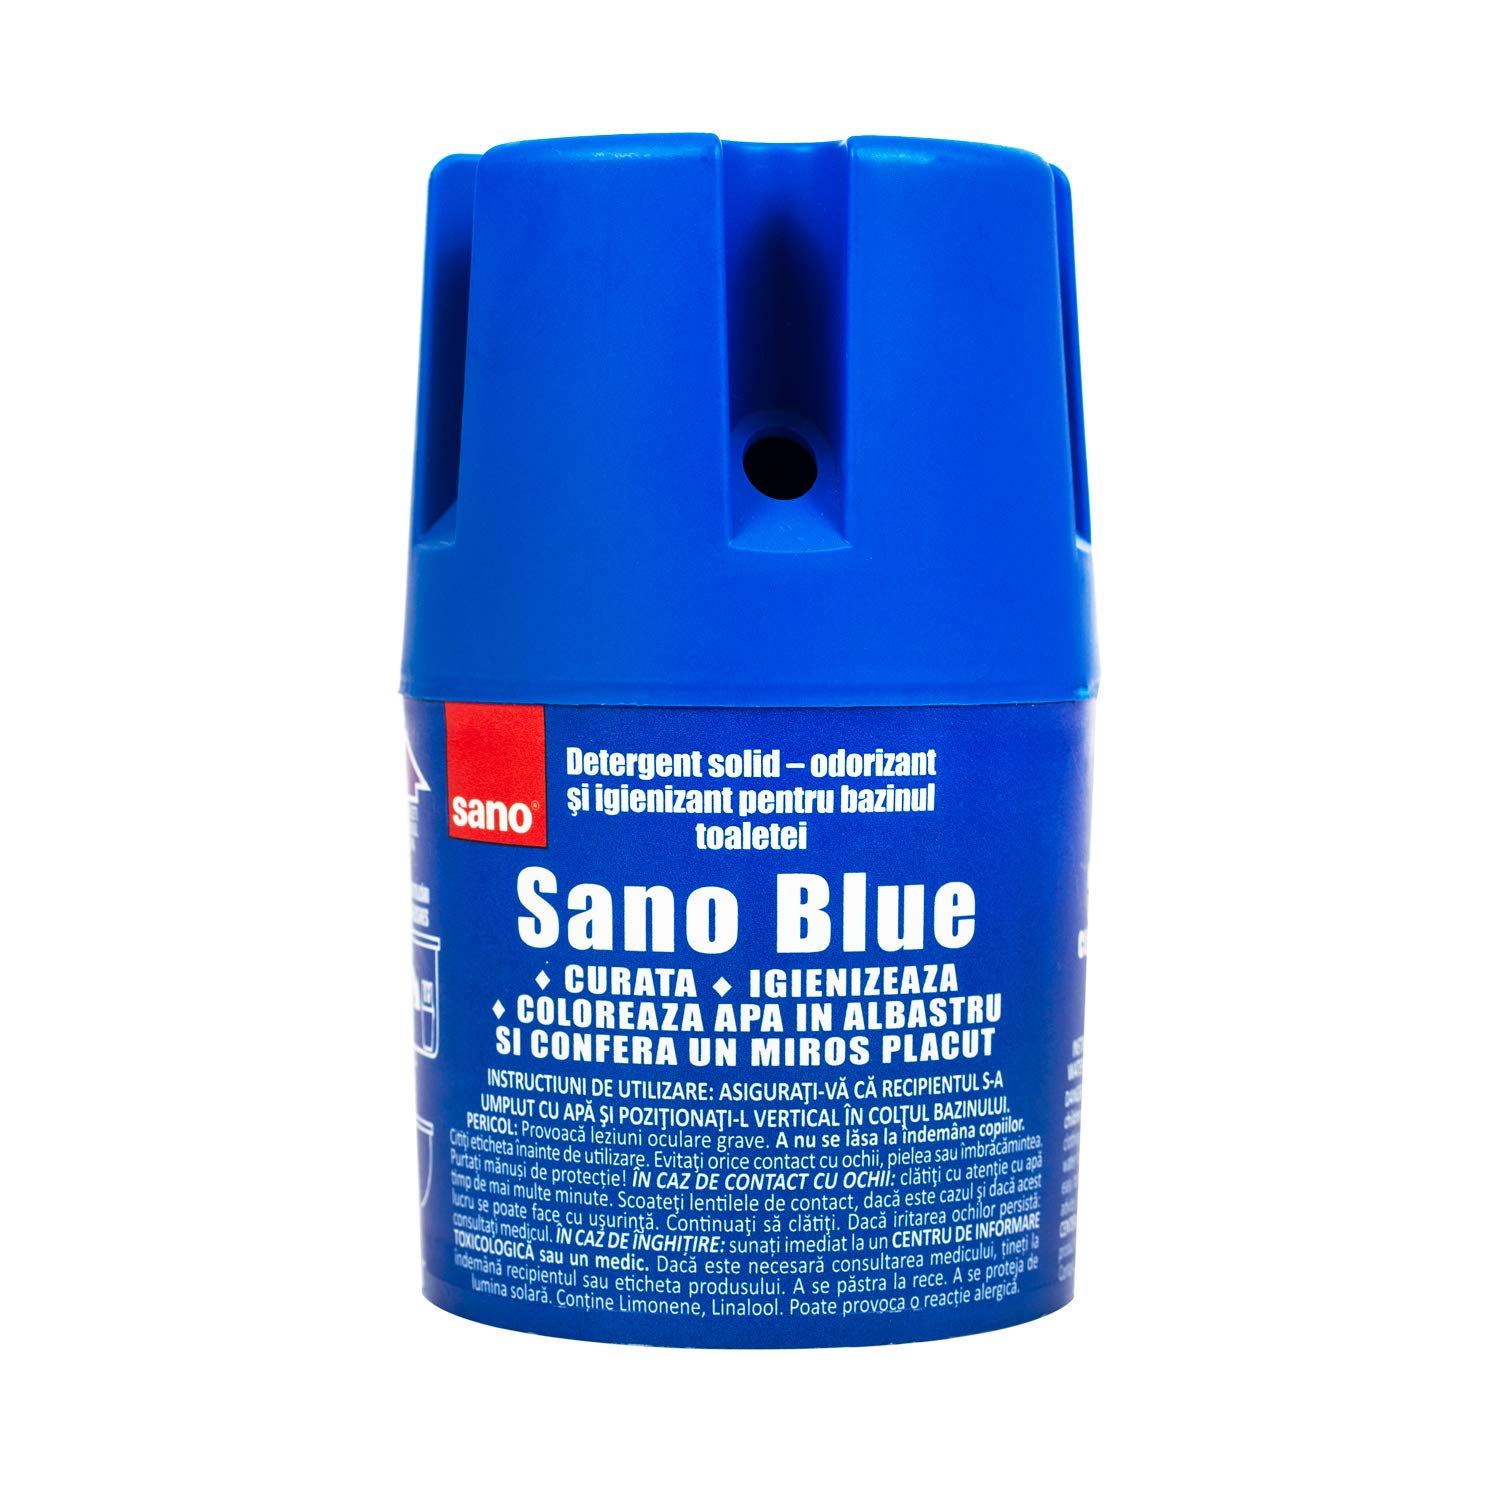 Sano Blue Water Toilet Bowl Cleaner Long Lasting Air Freshener WC Tablet Pack of 1